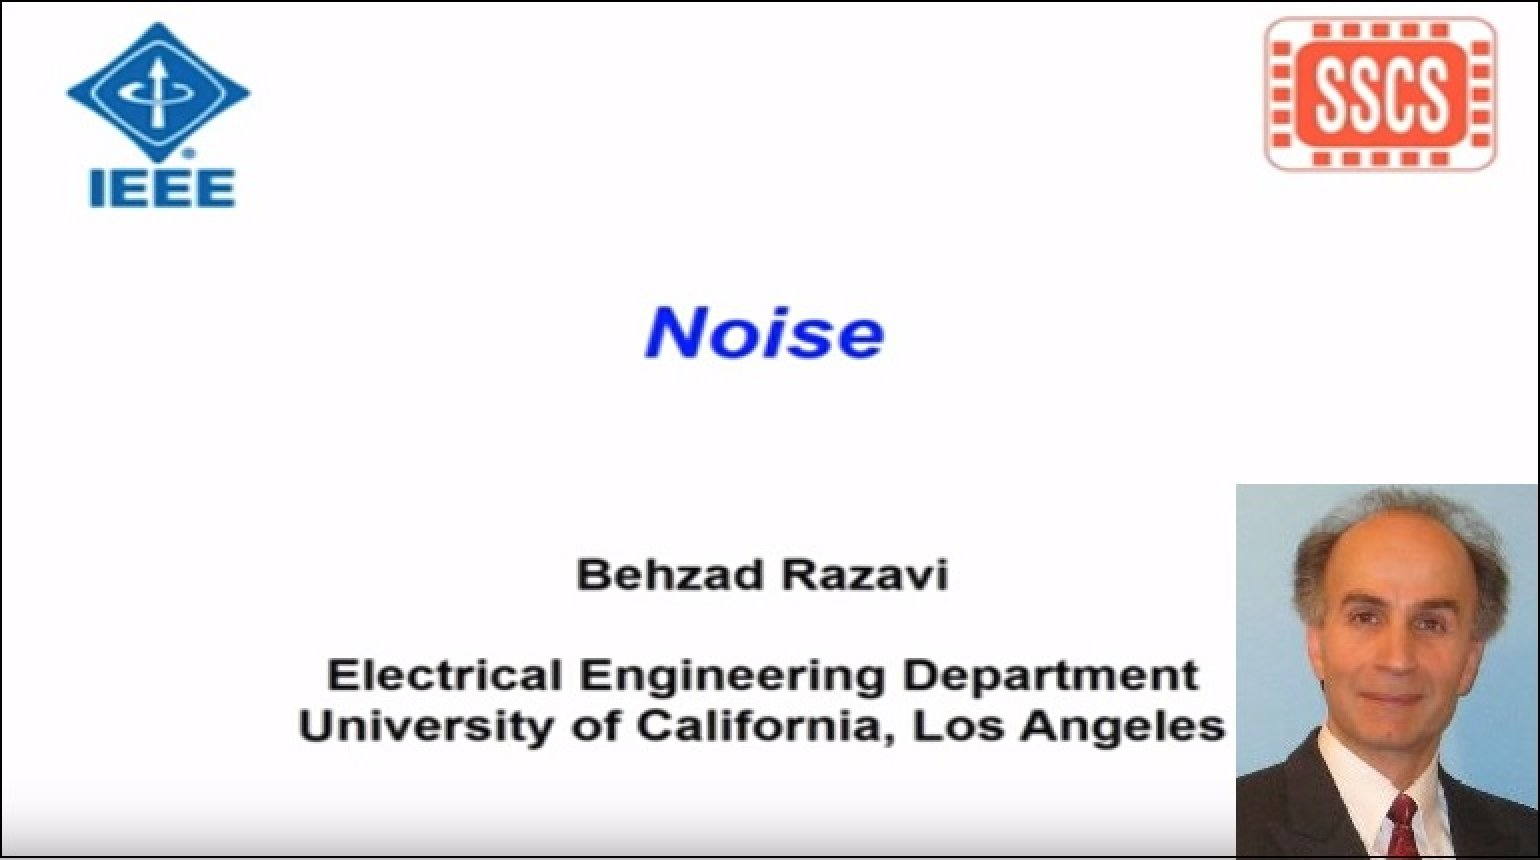 Noise: Lecture 2 - Device Noise Models Video